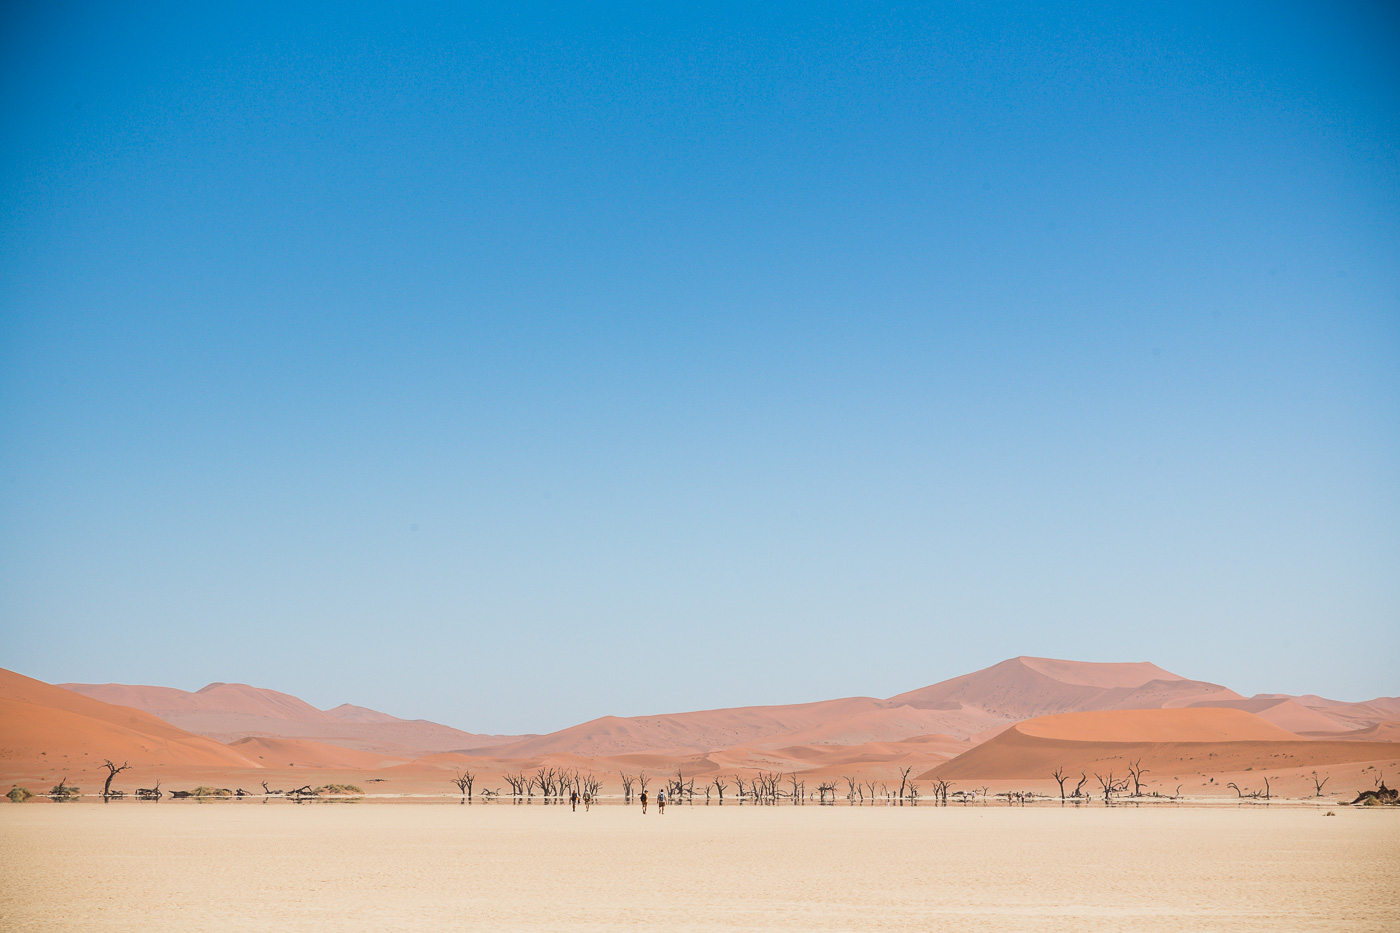 Dunes and petrified trees of Deadvlei Namibia